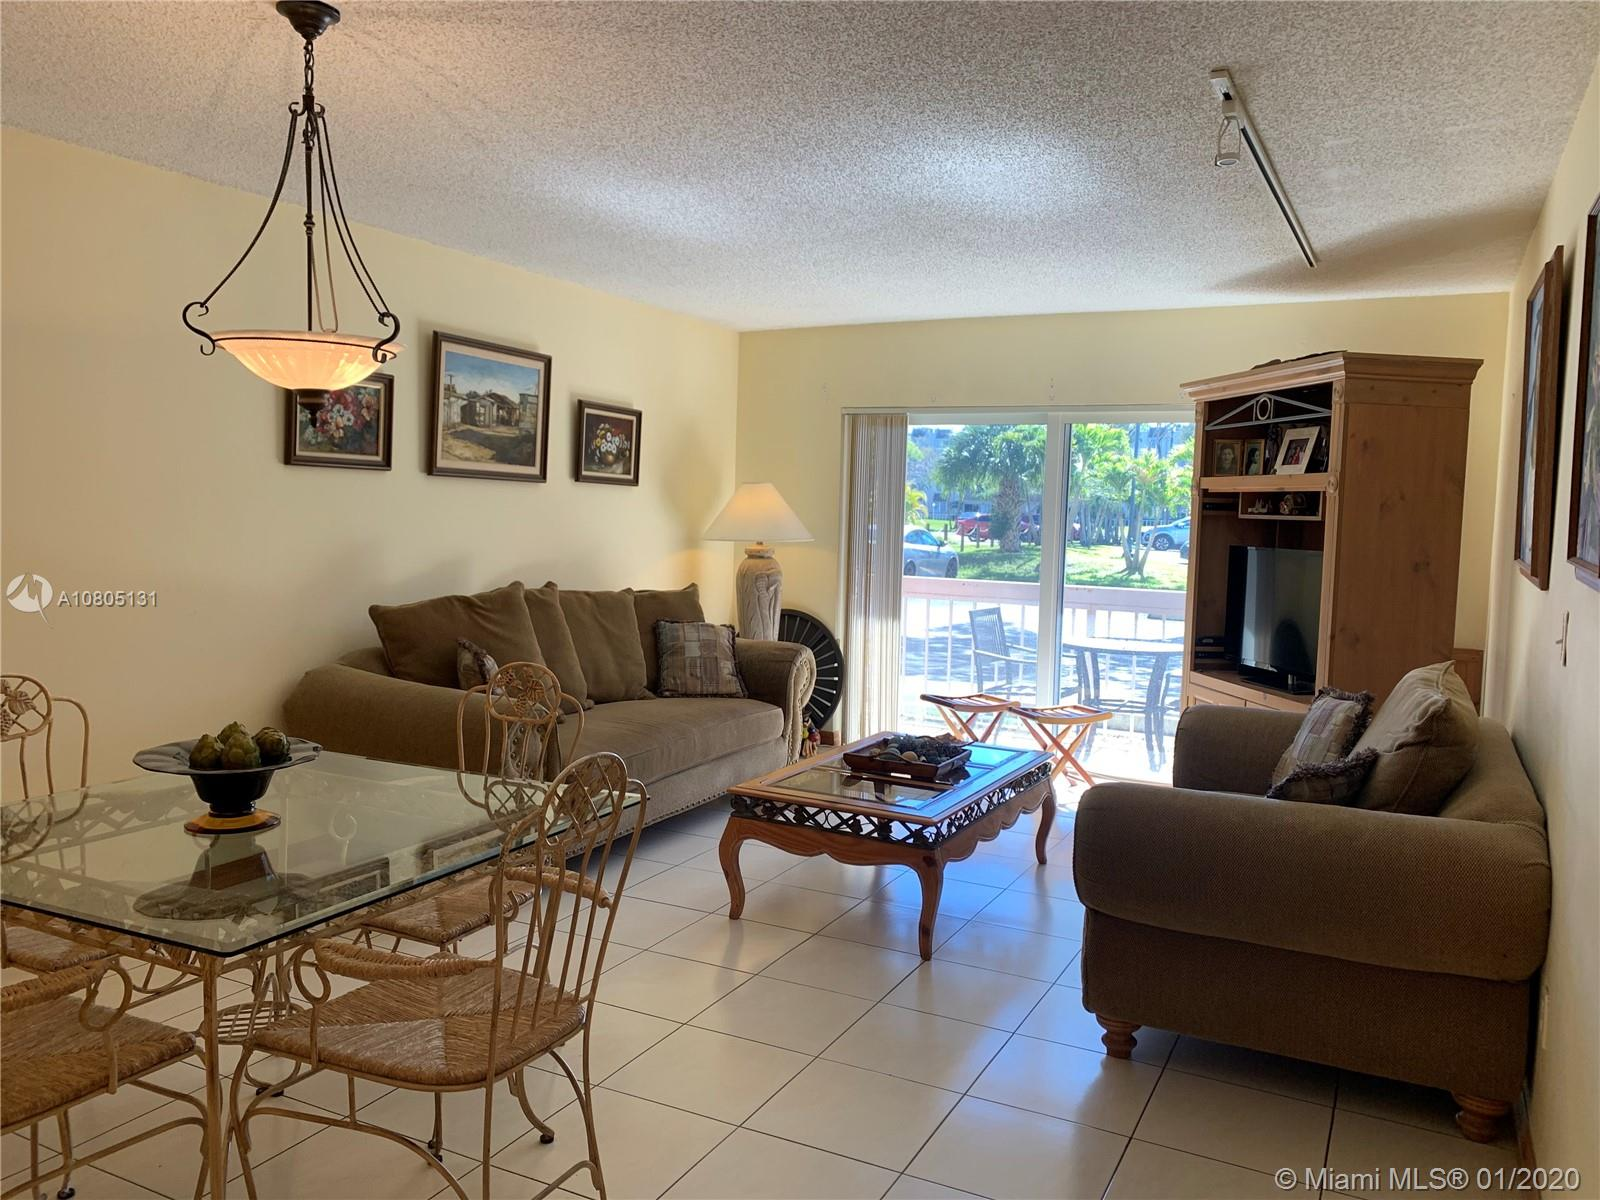 2/1, Well kept and ready to move in. QUIET BUILDING IN DESIRABLE VKC, CENTRALLY LOCATED WITH PLENTY OF PARKING. AMENITIES INCLUDE POOLS, TENNIS COURT, GYM, CLUBHOUSE, BBQ AREA, ROVING SECURITY & MORE. CLOSE TO SHOPPING, RESTAURANTS, MEDICAL CENTER, METRORAIL, UM & HIGHWAYS.